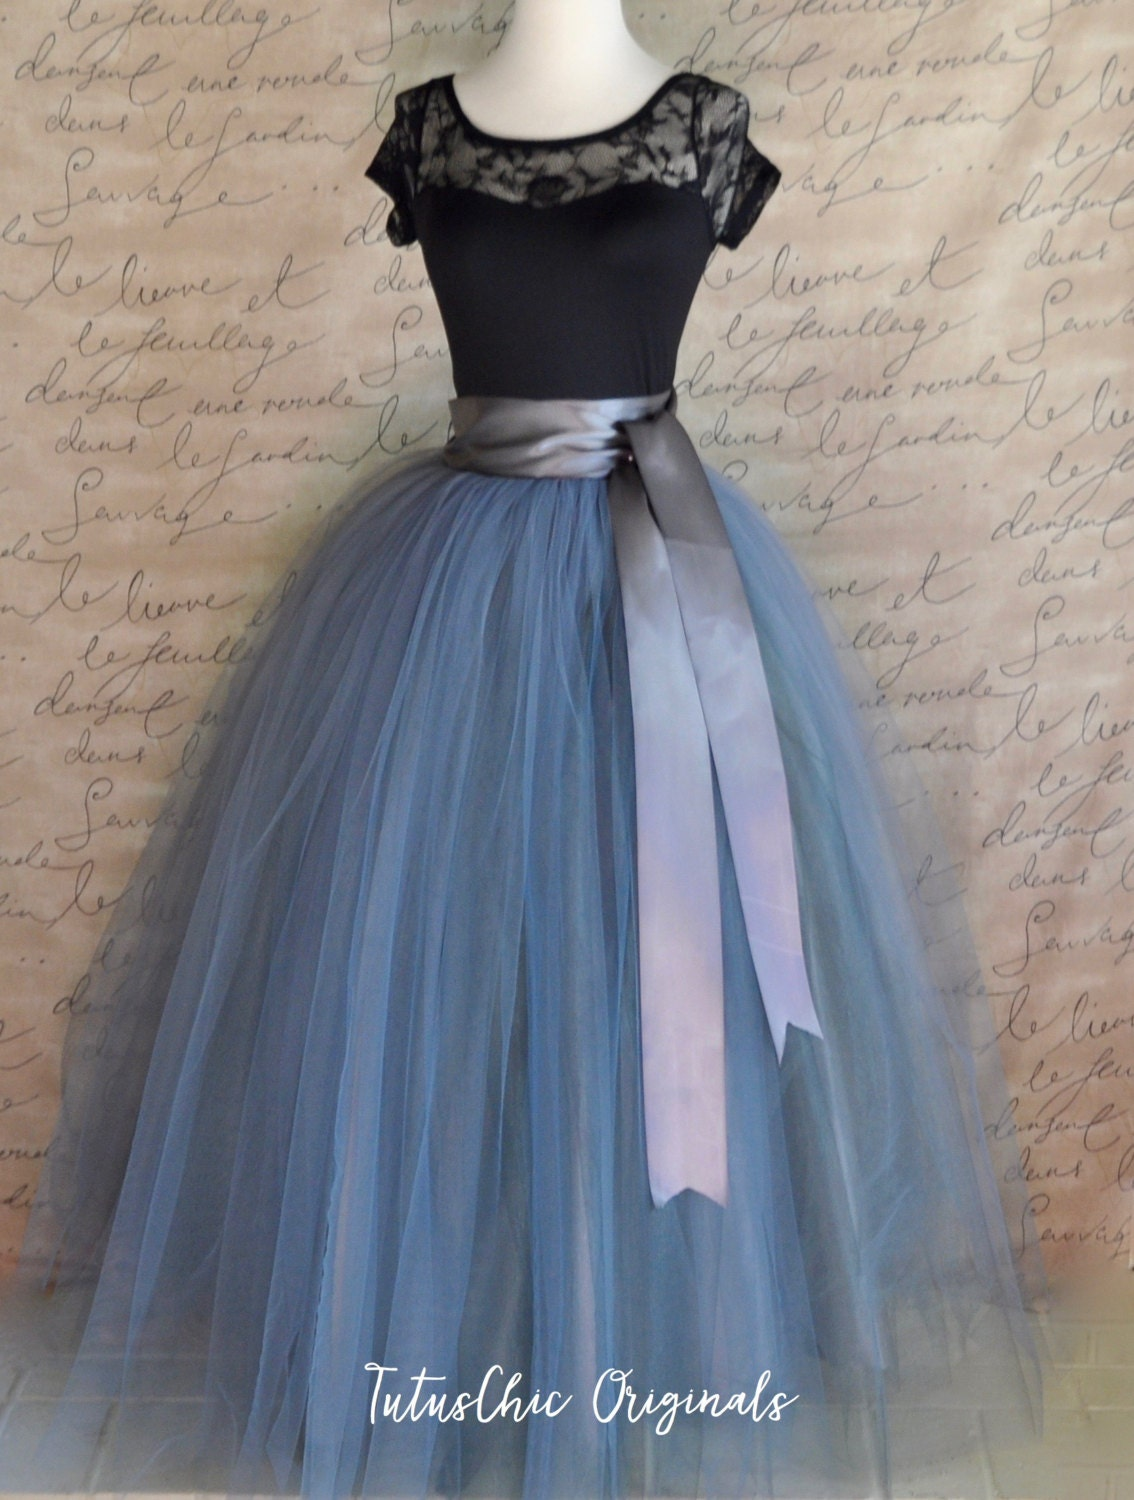 Tulle Full Length Maxi Skirt Charcoal Grey Tulle Lined In